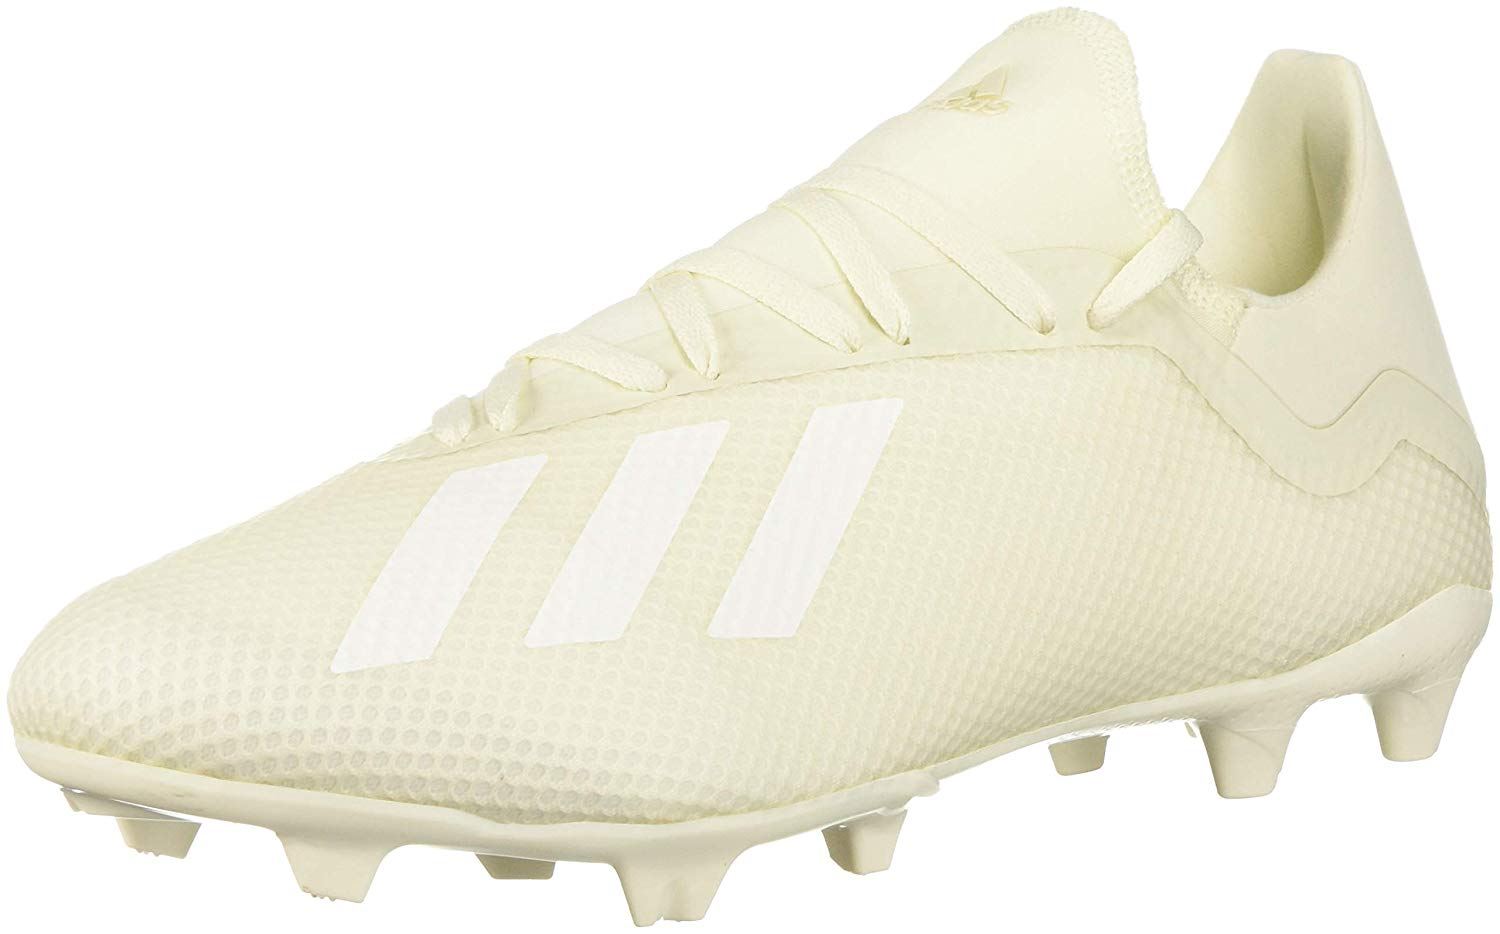 9b88321a3 10 BEST FOOTBALL BOOTS FOR SHOOTING AND PASSING 2019